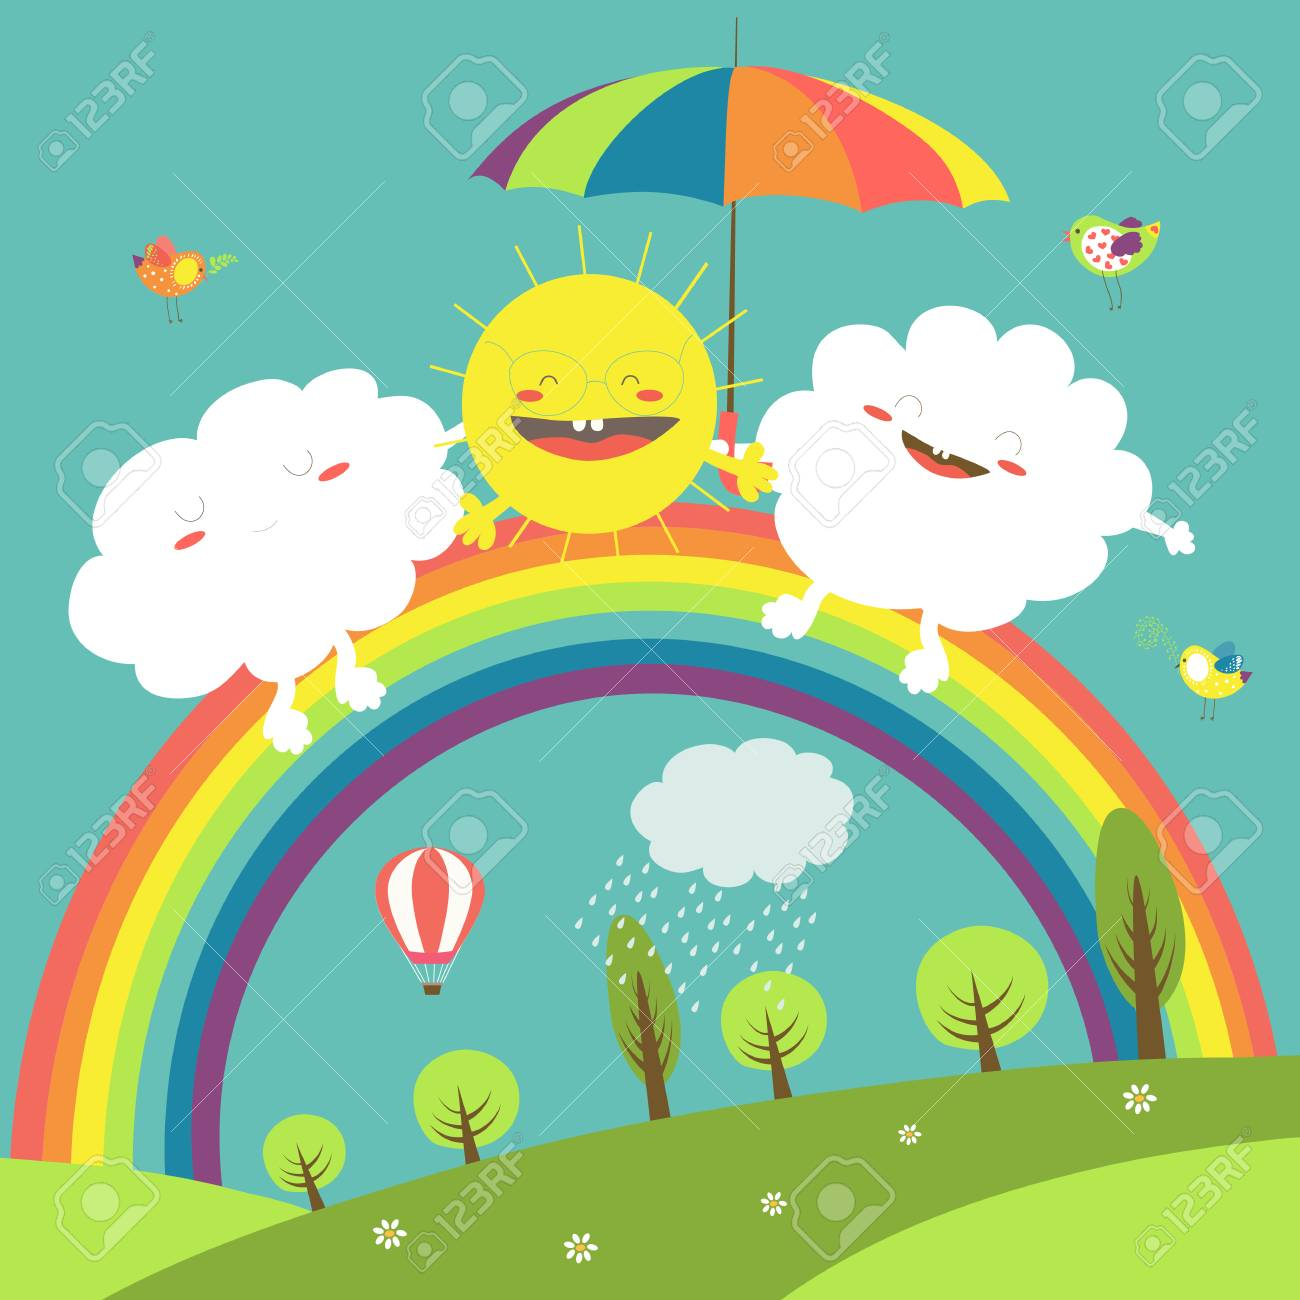 Vector illustration of rainbow, cloud and happy sun in the sky - 60324225